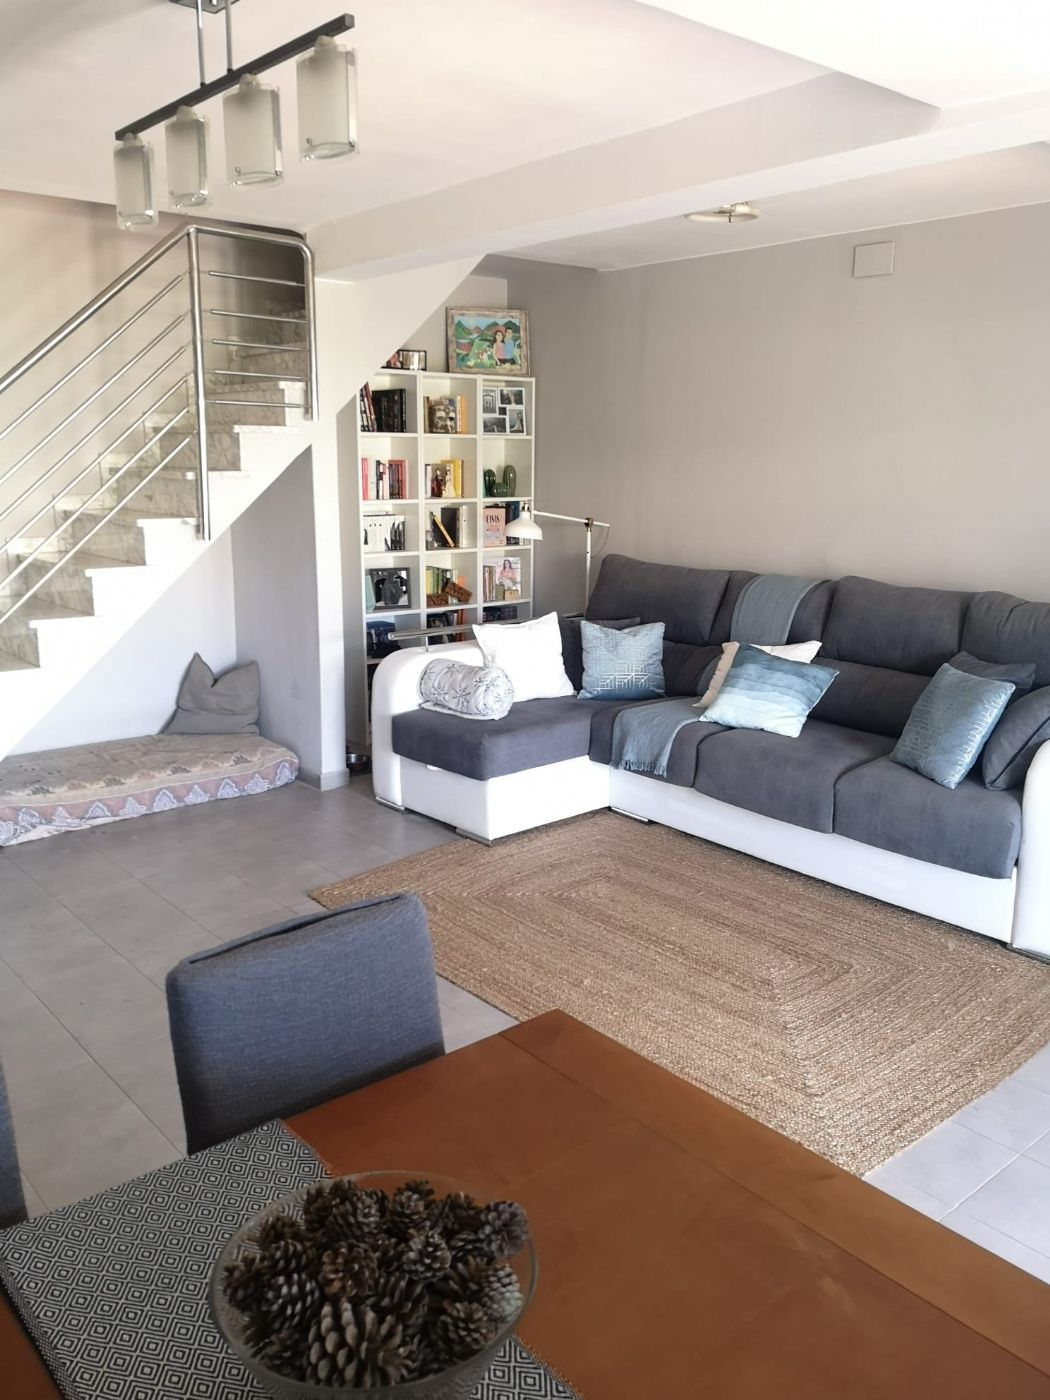 Semi detached house in Carrer font del roure, sn. Espectacular casa reformada